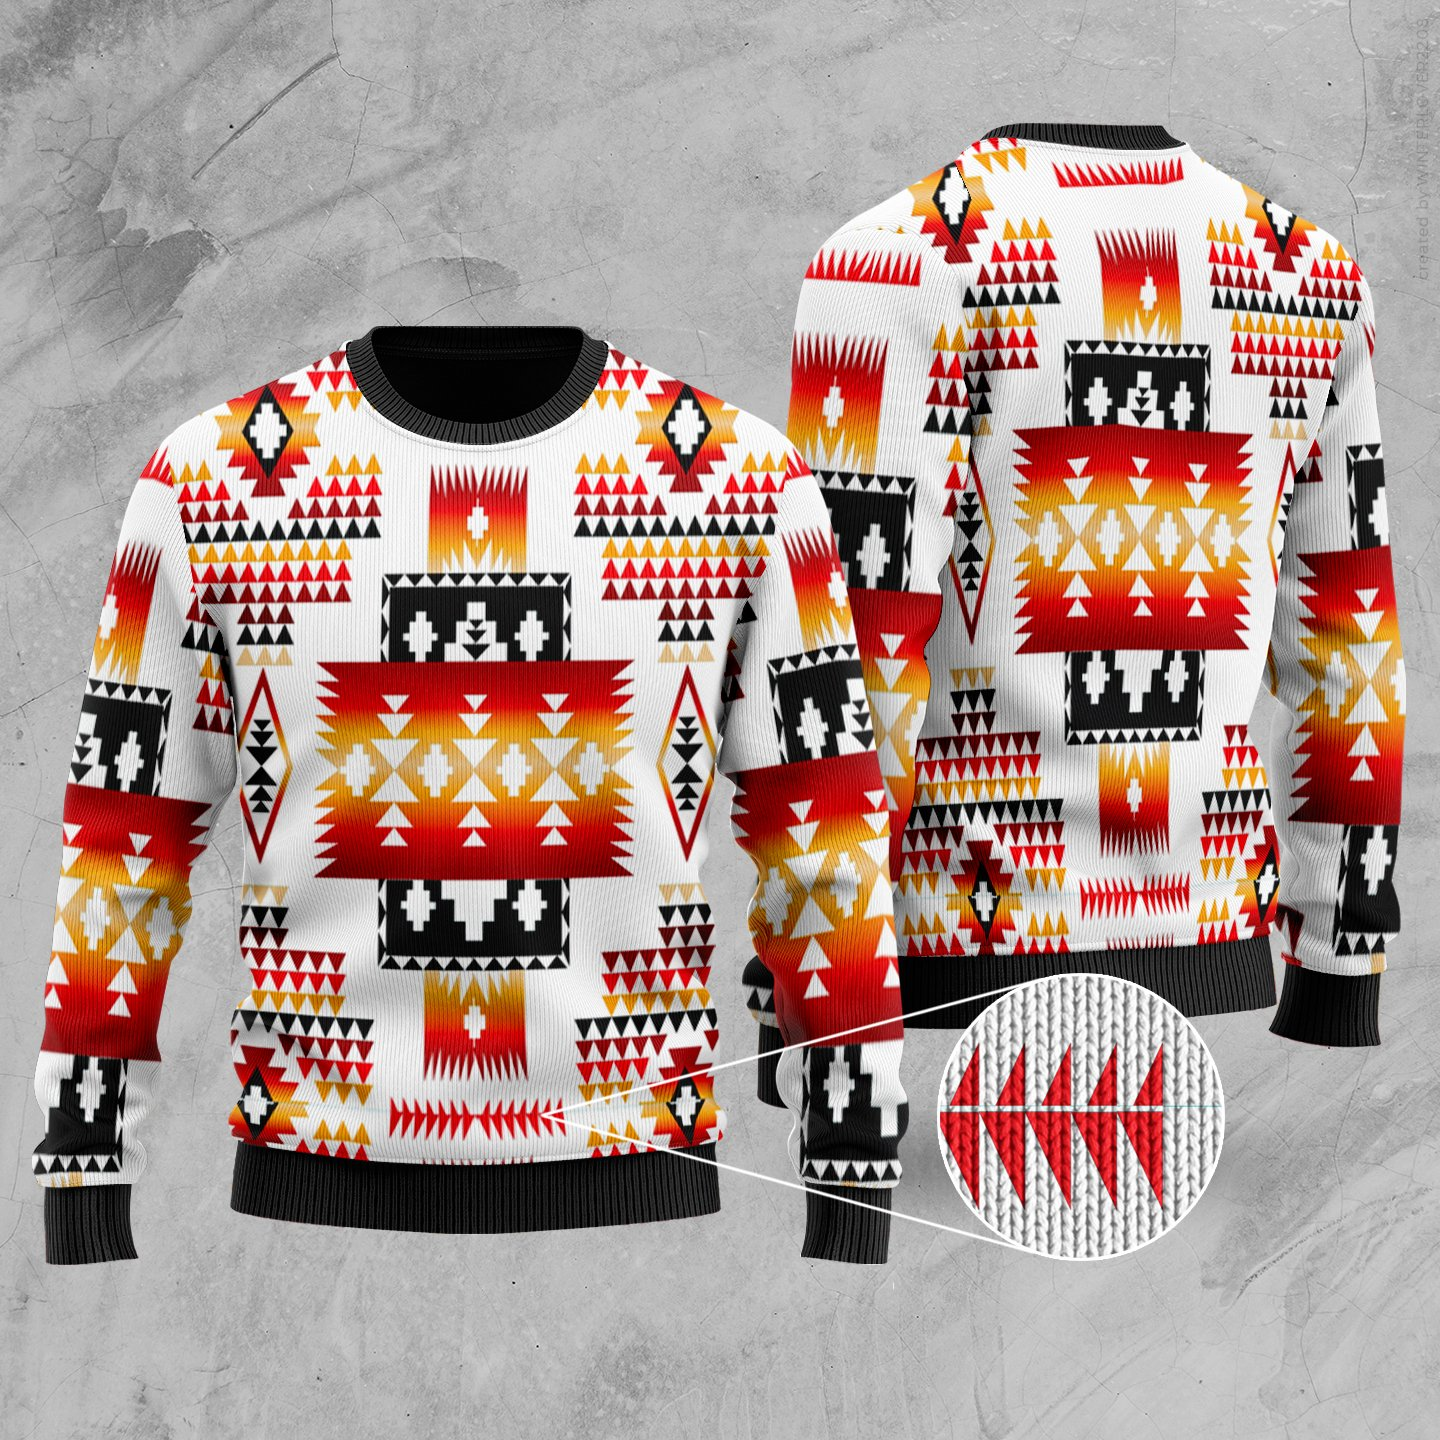 native american tribes pattern full printing christmas ugly sweater 2